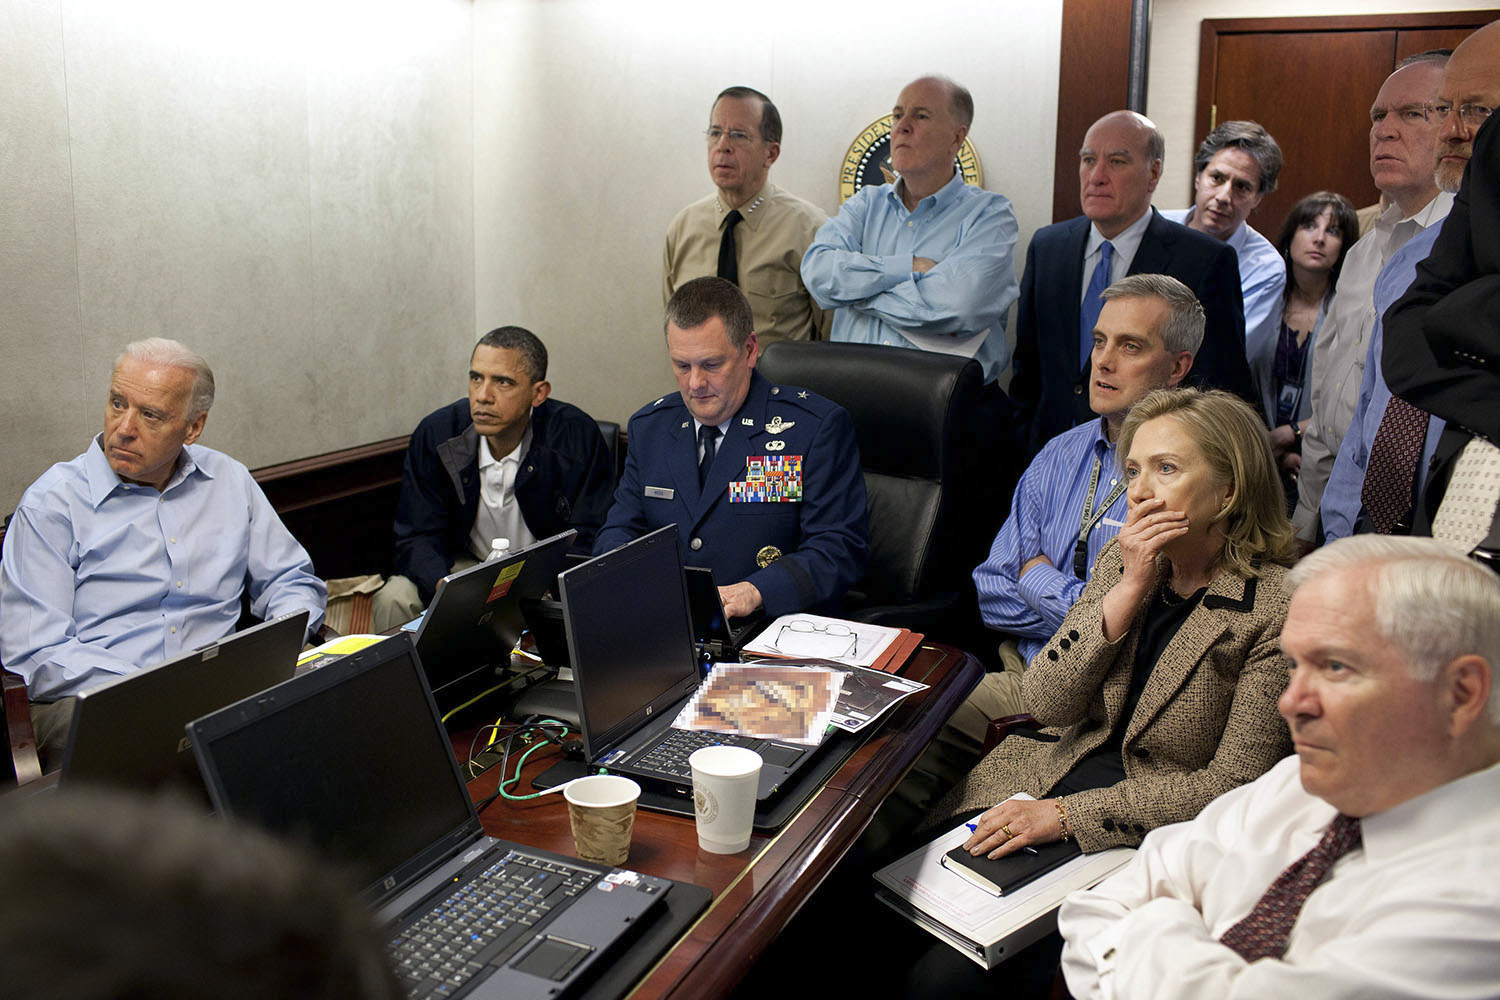 "May 1, 2011 ""Much has been made of this photograph that shows the President and Vice President and the national security team monitoring in real time the mission against Osama bin Laden. Some more background on the photograph: The White House Situation Room is actually comprised of several different conference rooms. The majority of the time, the President convenes meetings in the large conference room with assigned seats. But to monitor this mission, the group moved into the much smaller conference room. The President chose to sit next to Brigadier General Marshall B. ""Brad"" Webb, Assistant Commanding General of Joint Special Operations Command, who was point man for the communications taking place. WIth so few chairs, others just stood at the back of the room. I was jammed into a corner of the room with no room to move. During the mission itself, I made approximately 100 photographs, almost all from this cramped spot in the corner. There were several other meetings throughout the day, and we've put together a composite of several photographs (see next photo in this set) to give people a better sense of what the day was like. Seated in this picture from left to right: Vice President Biden, the President, Brig. Gen. Webb, Deputy National Security Advisor Denis McDonough, Secretary of State Hillary Rodham Clinton, and then Secretary of Defense Robert Gates. Standing, from left, are: Admiral Mike Mullen, then Chairman of the Joint Chiefs of Staff; National Security Advisor Tom Donilon; Chief of Staff Bill Daley; Tony Blinken, National Security Advisor to the Vice President; Audrey Tomason Director for Counterterrorism; John Brennan, Assistant to the President for Homeland Security and Counterterrorism; and Director of National Intelligence James Clapper. Please note: a classified document seen in front of Sec. Clinton has been obscured."" (Official White House Photo by Pete Souza)"